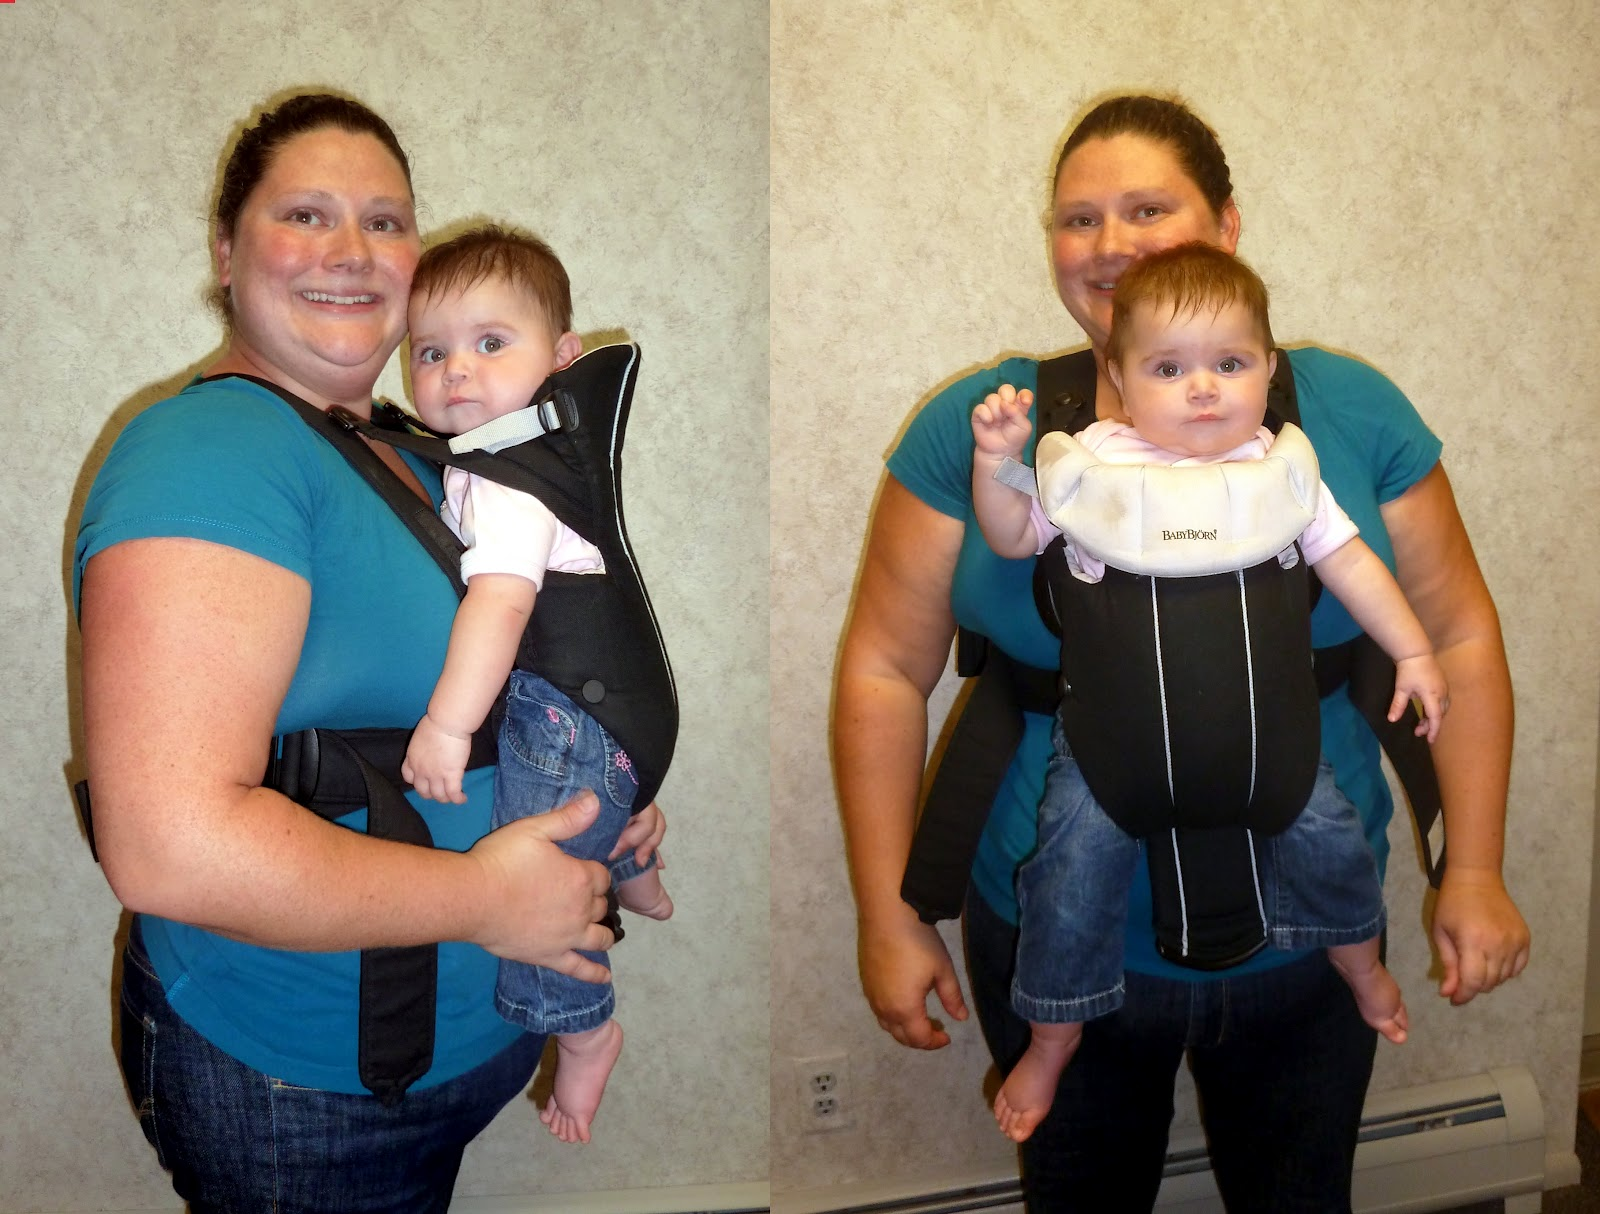 Infant Hip Carrier Prices Baby Bjorn Vs Ergo Battle Of The Big Box Store Baby Carriers